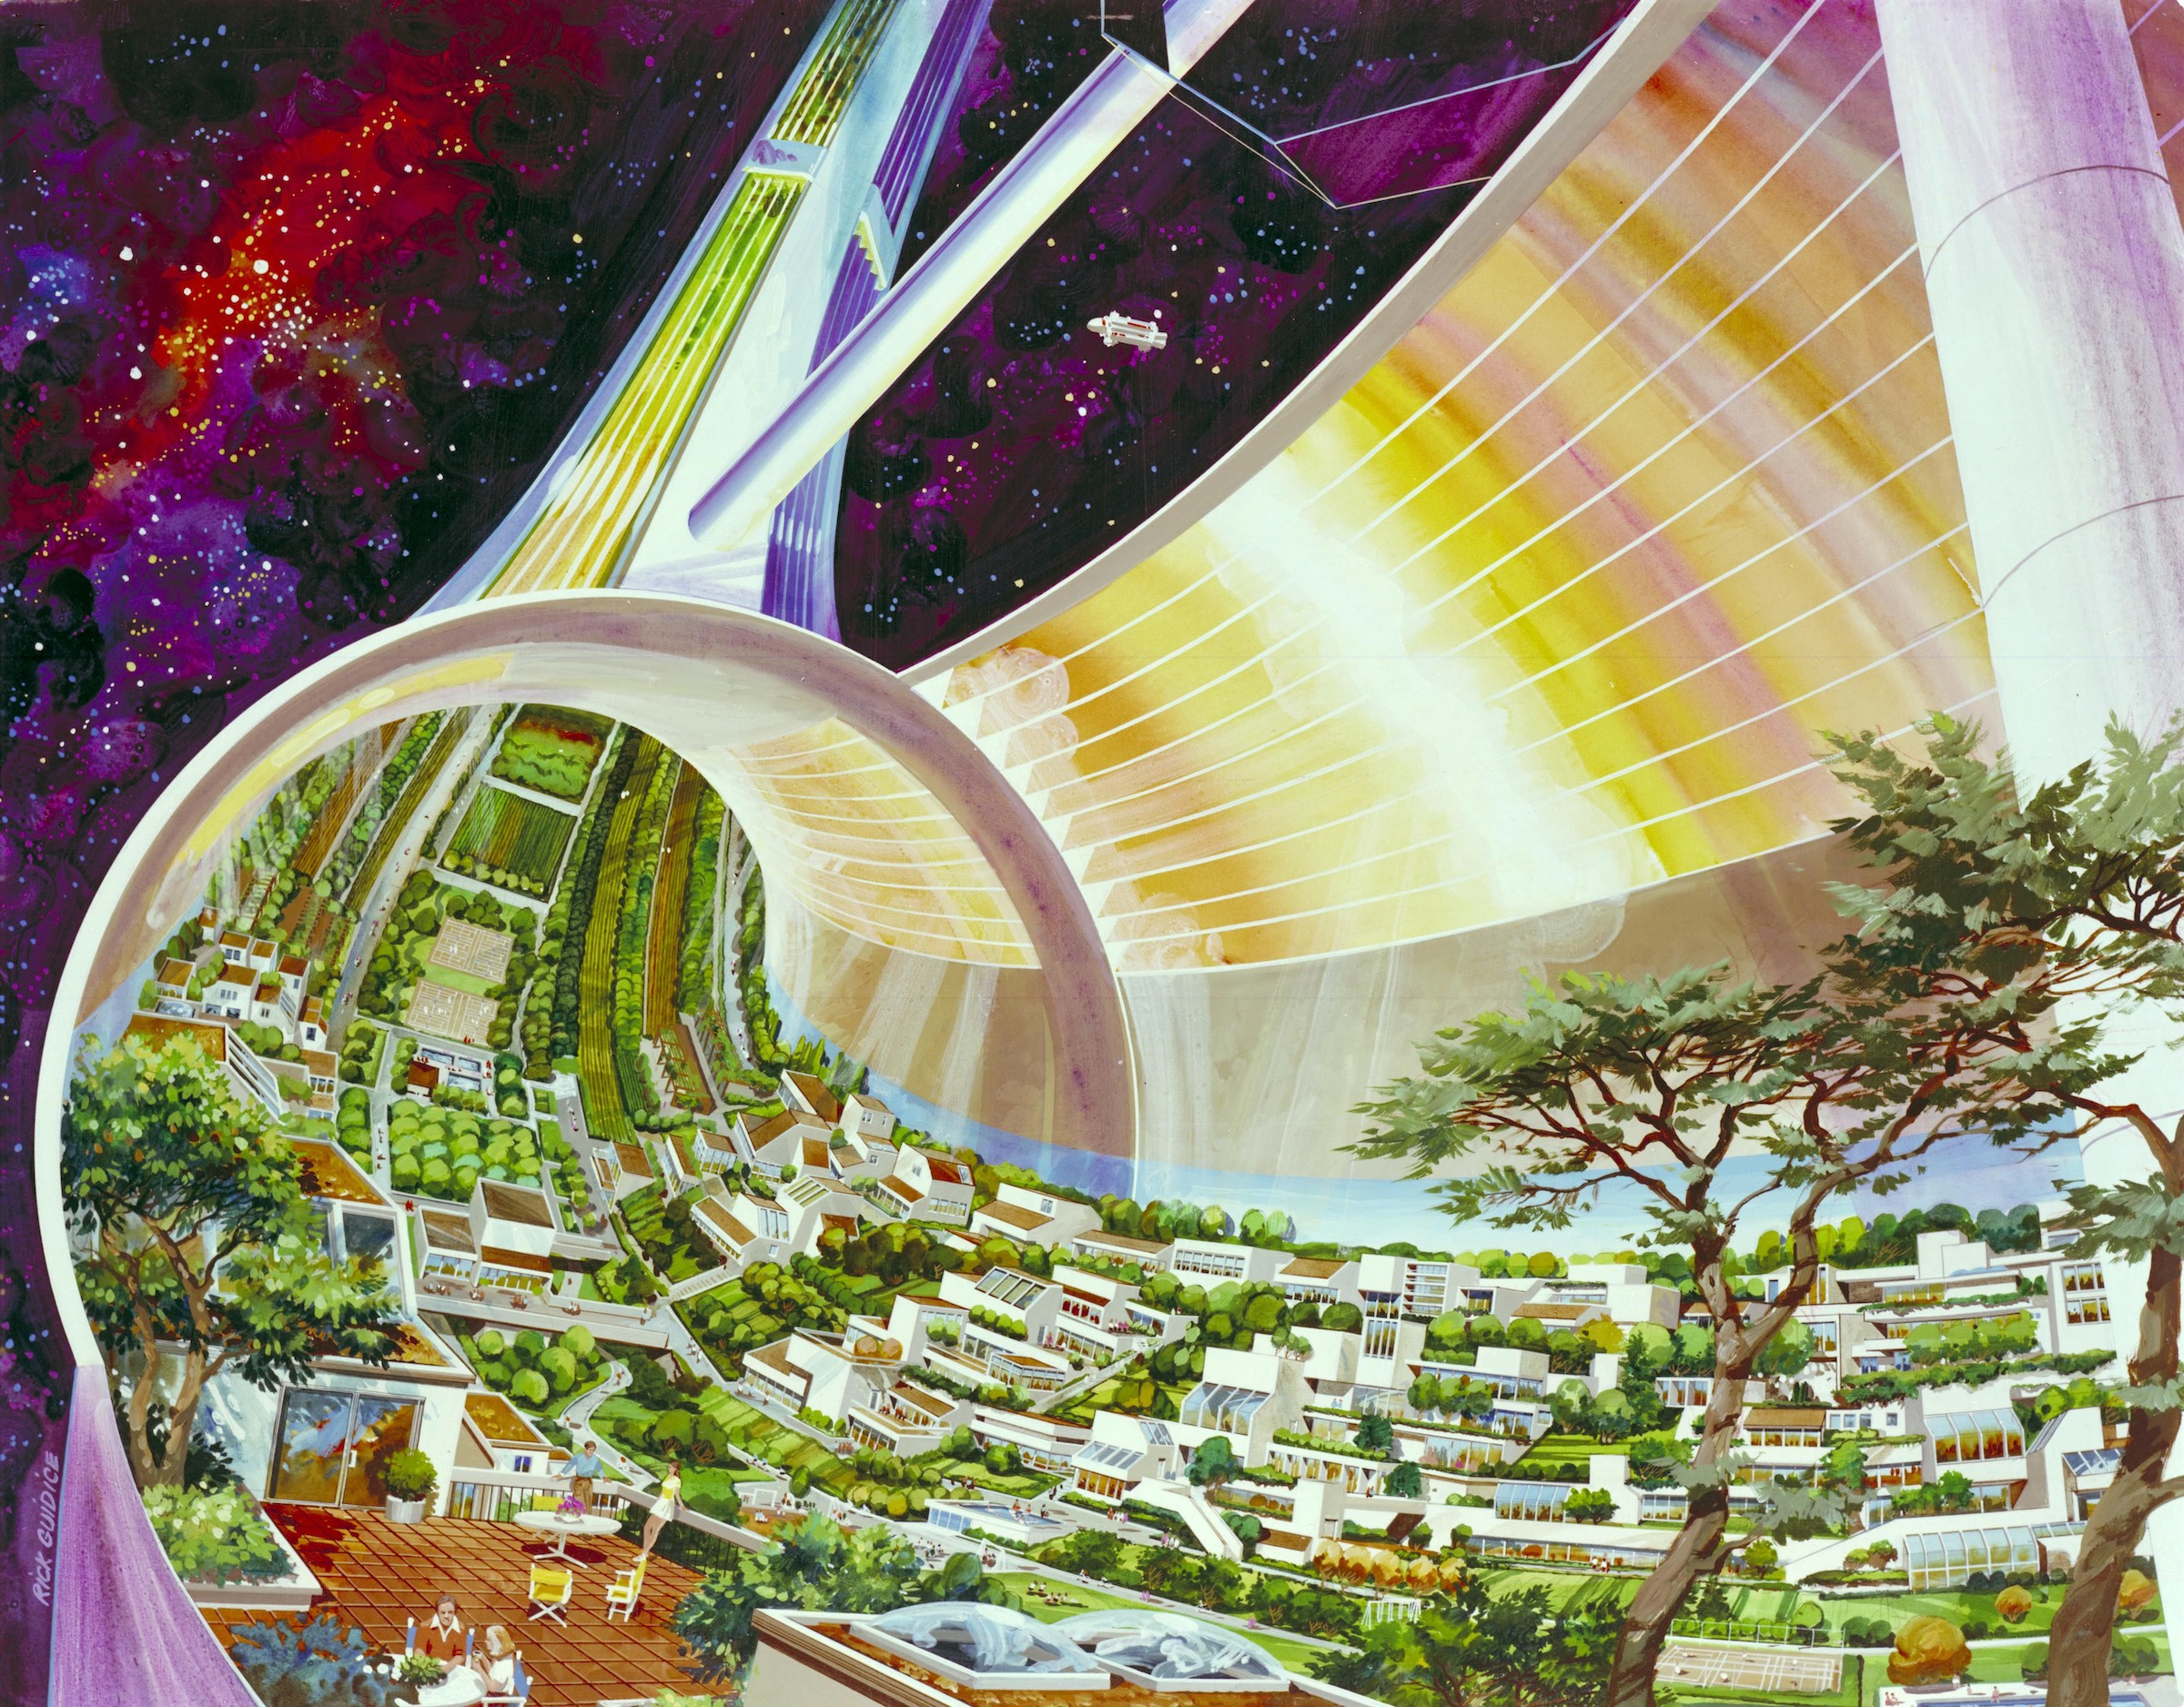 Artist's rendering of a futuristic off-planet settlement floating in space.